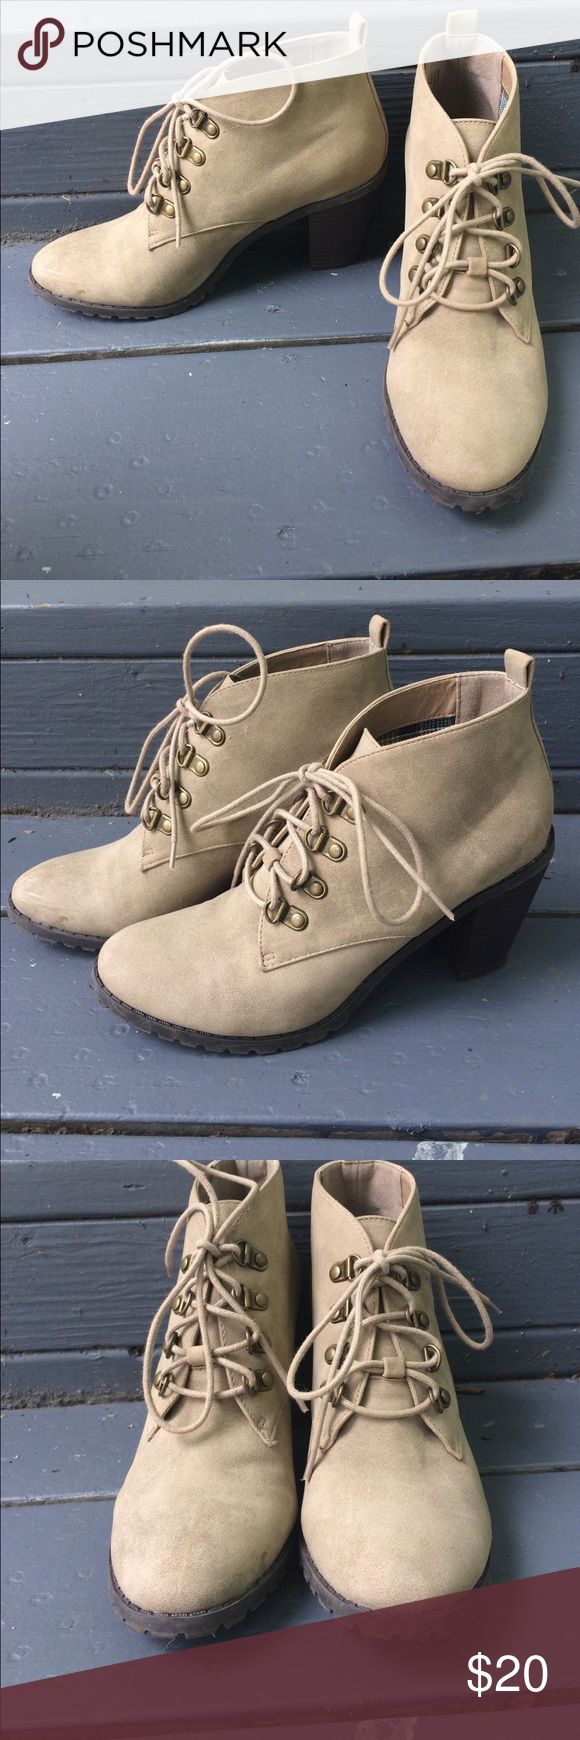 Suede heeled boots Suede lace up heeled boots. Restricted Shoes Ankle Boots & Booties